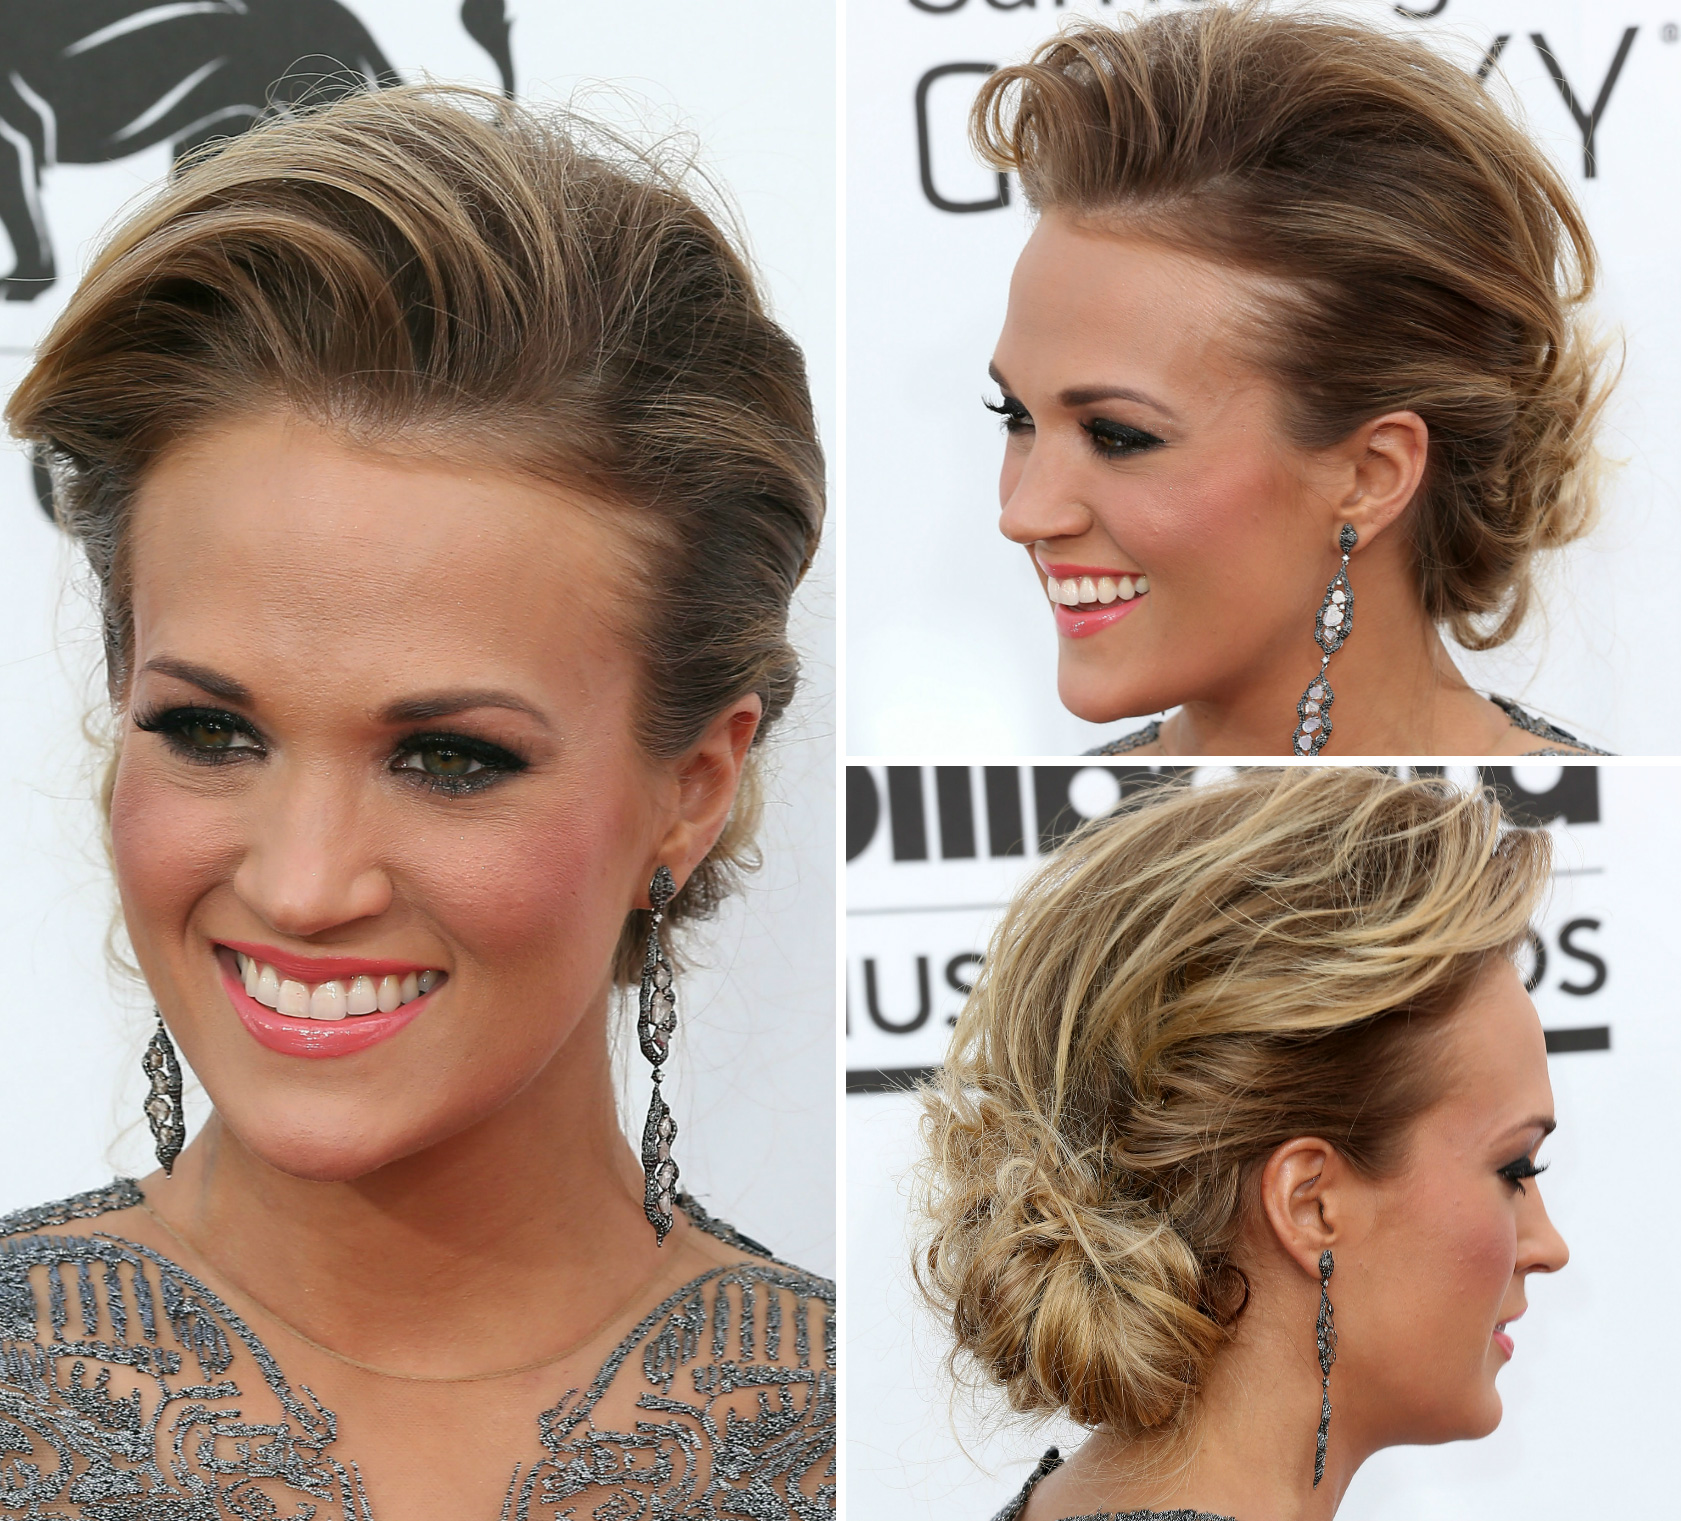 Carrie Underwood with a Glam bun